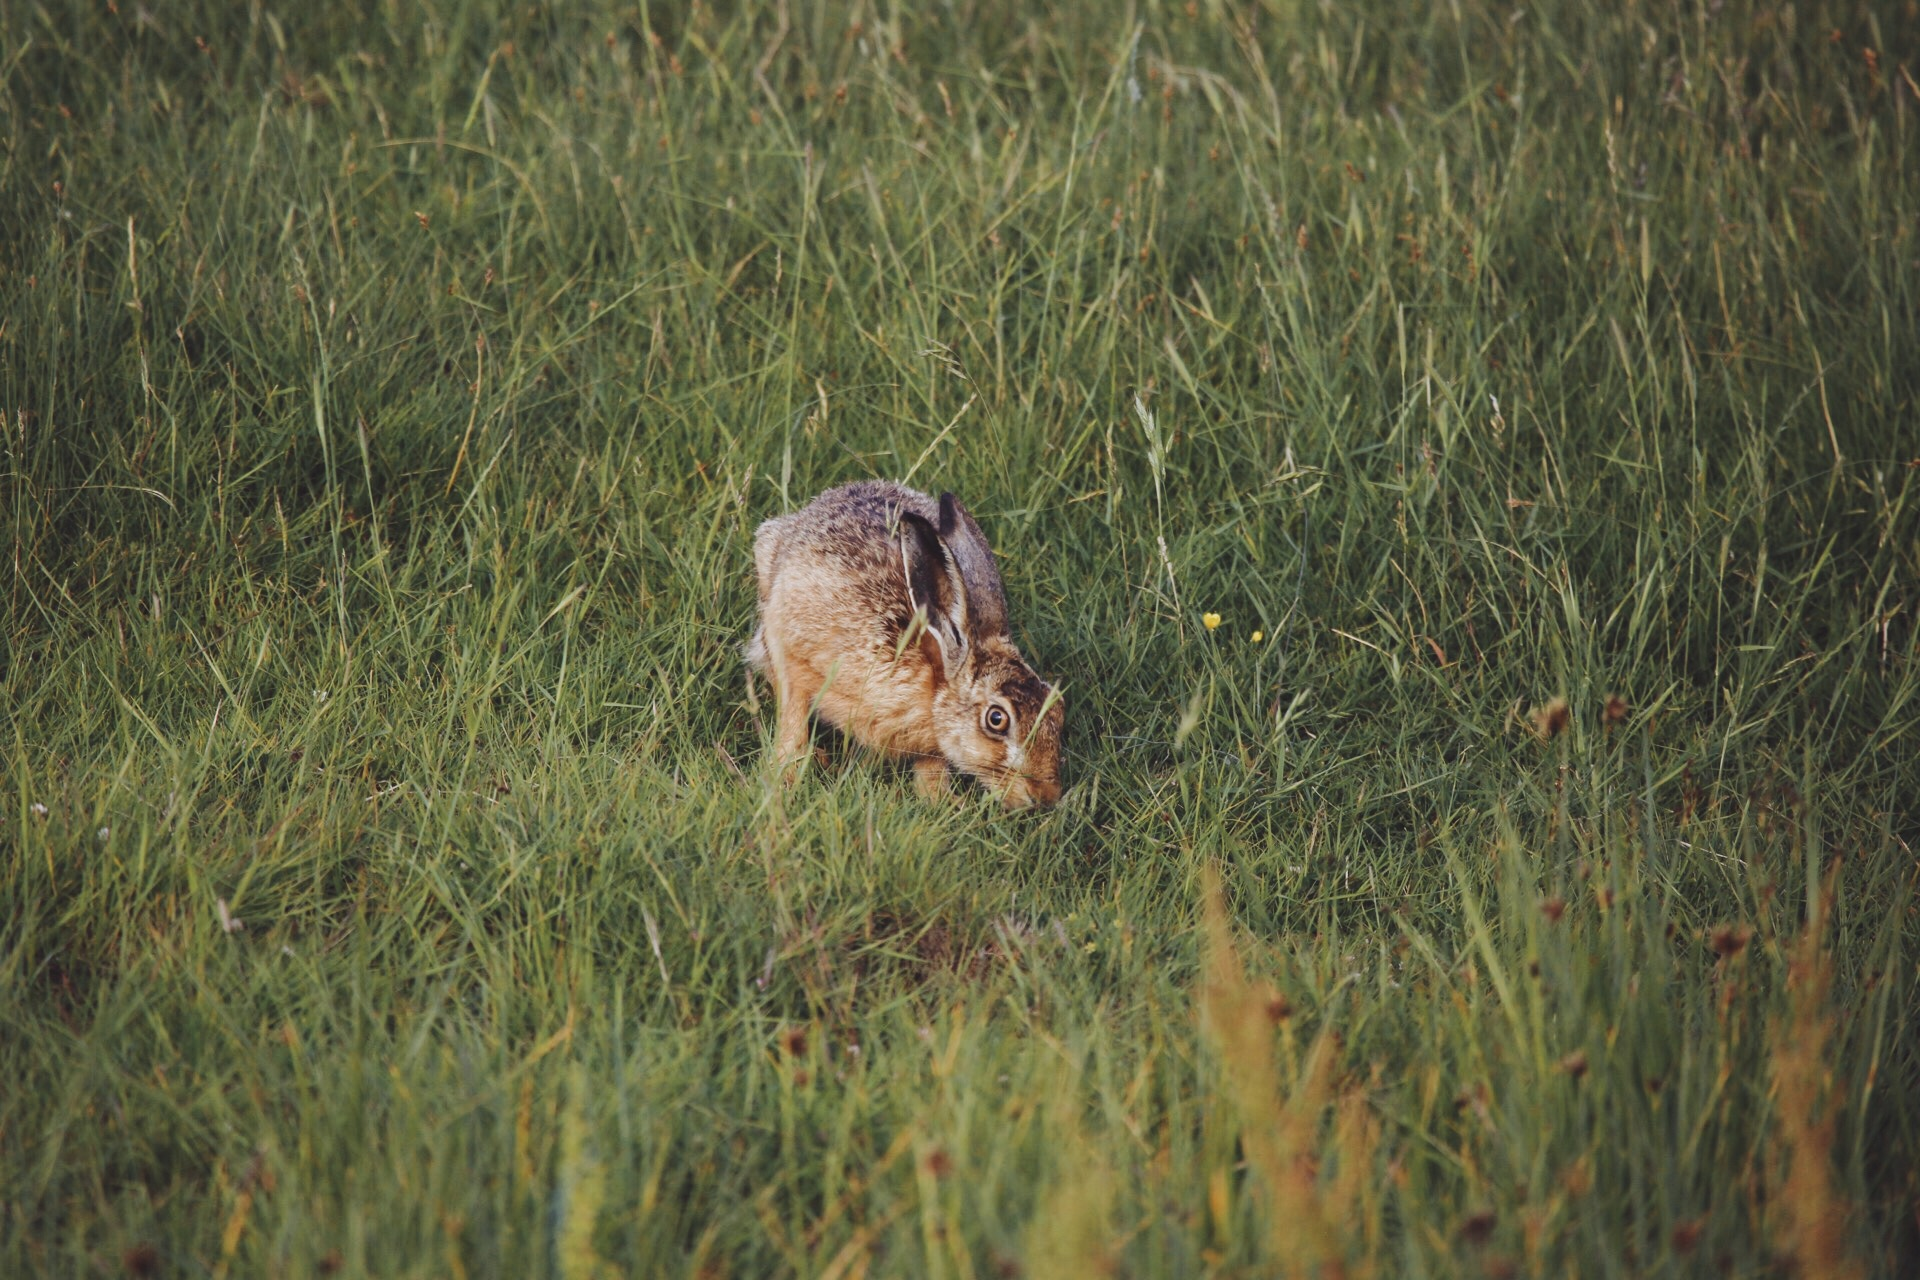 Hares at Elmley Nature Reserve, Sheppey